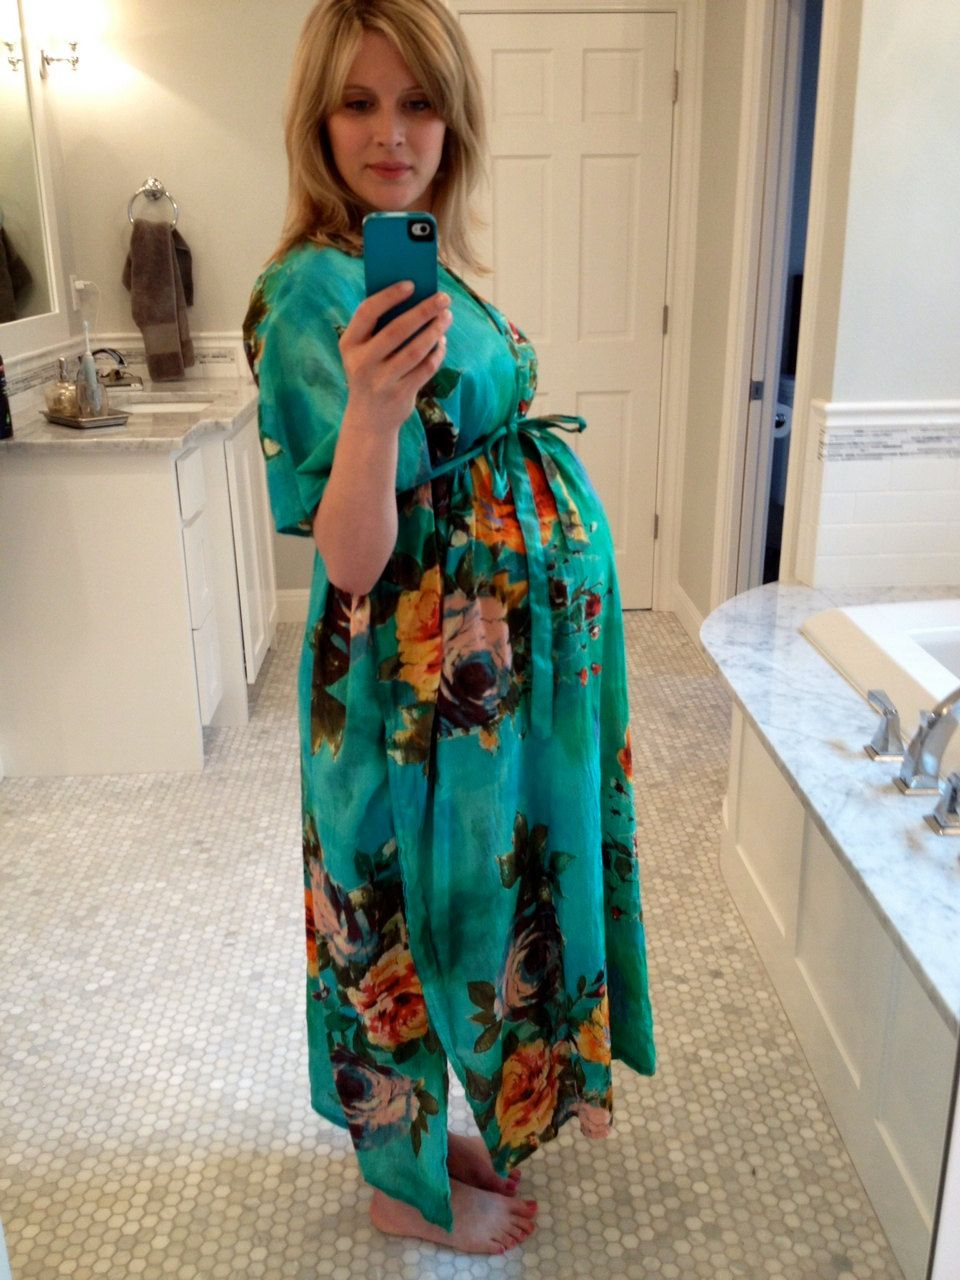 Hospital Gown Delivery Kaftan - Aqua - Perfect as labor, delivery ...